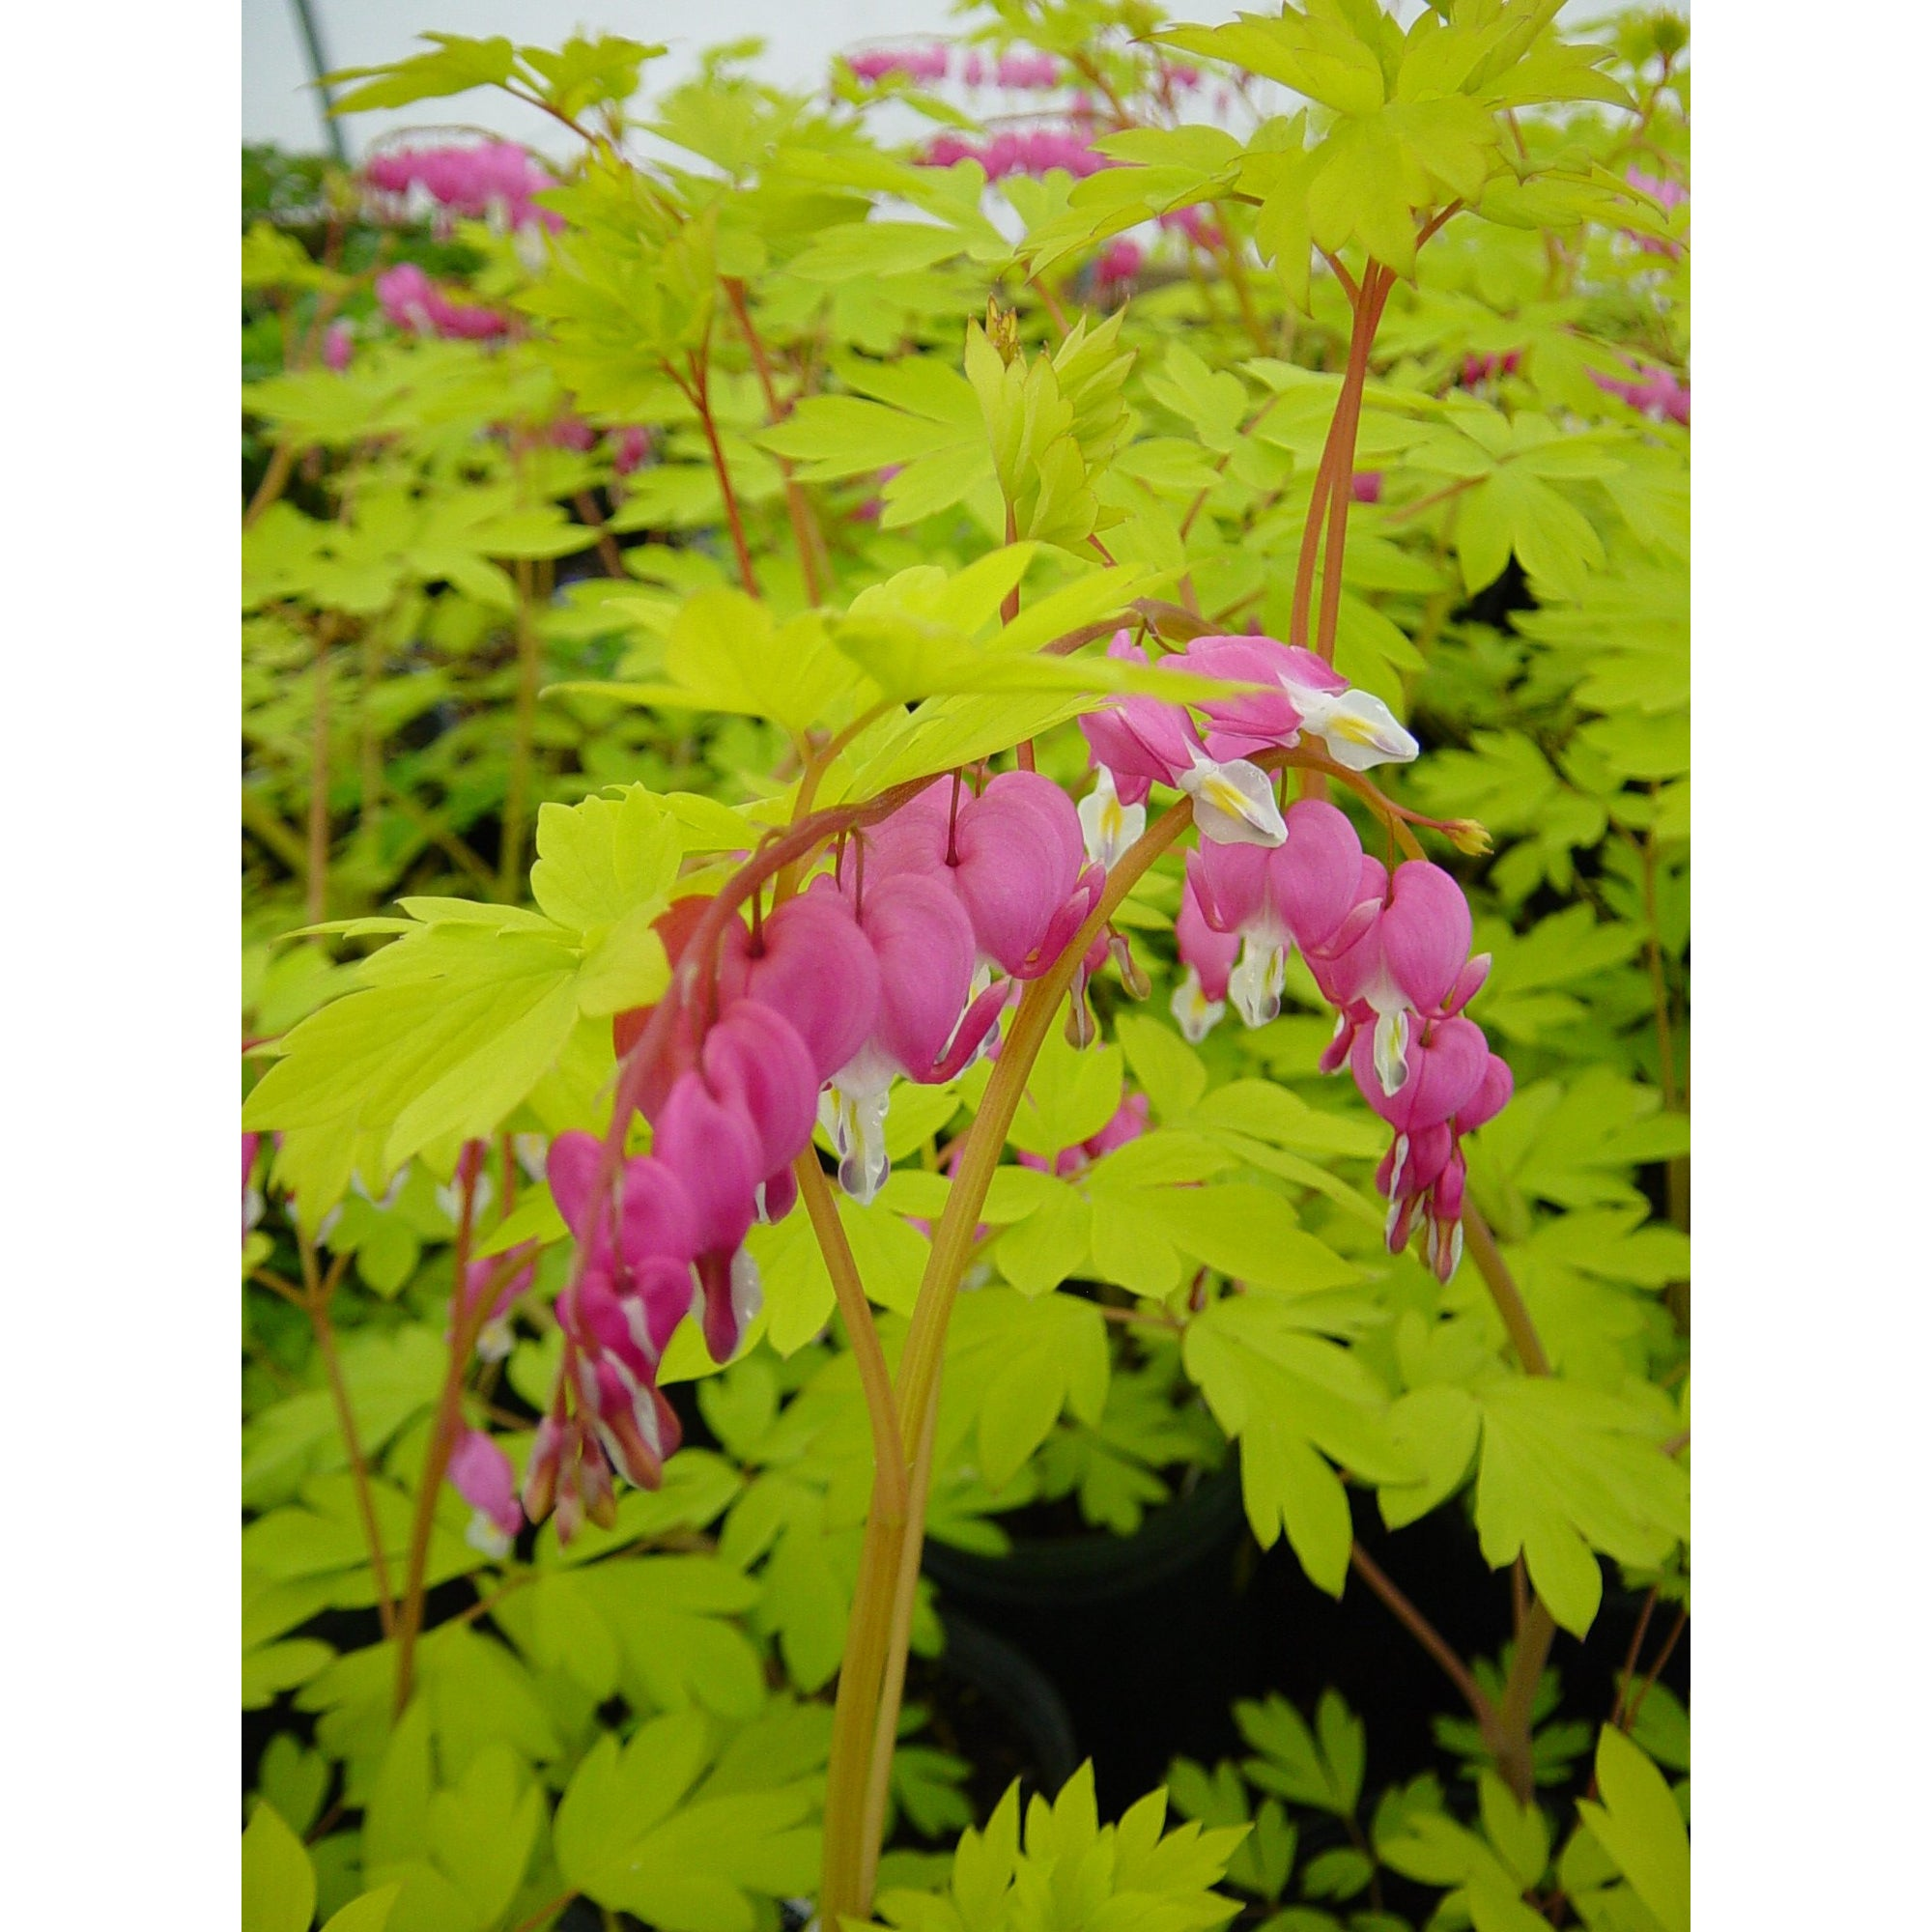 Dicentra spec. 'Gold Heart'